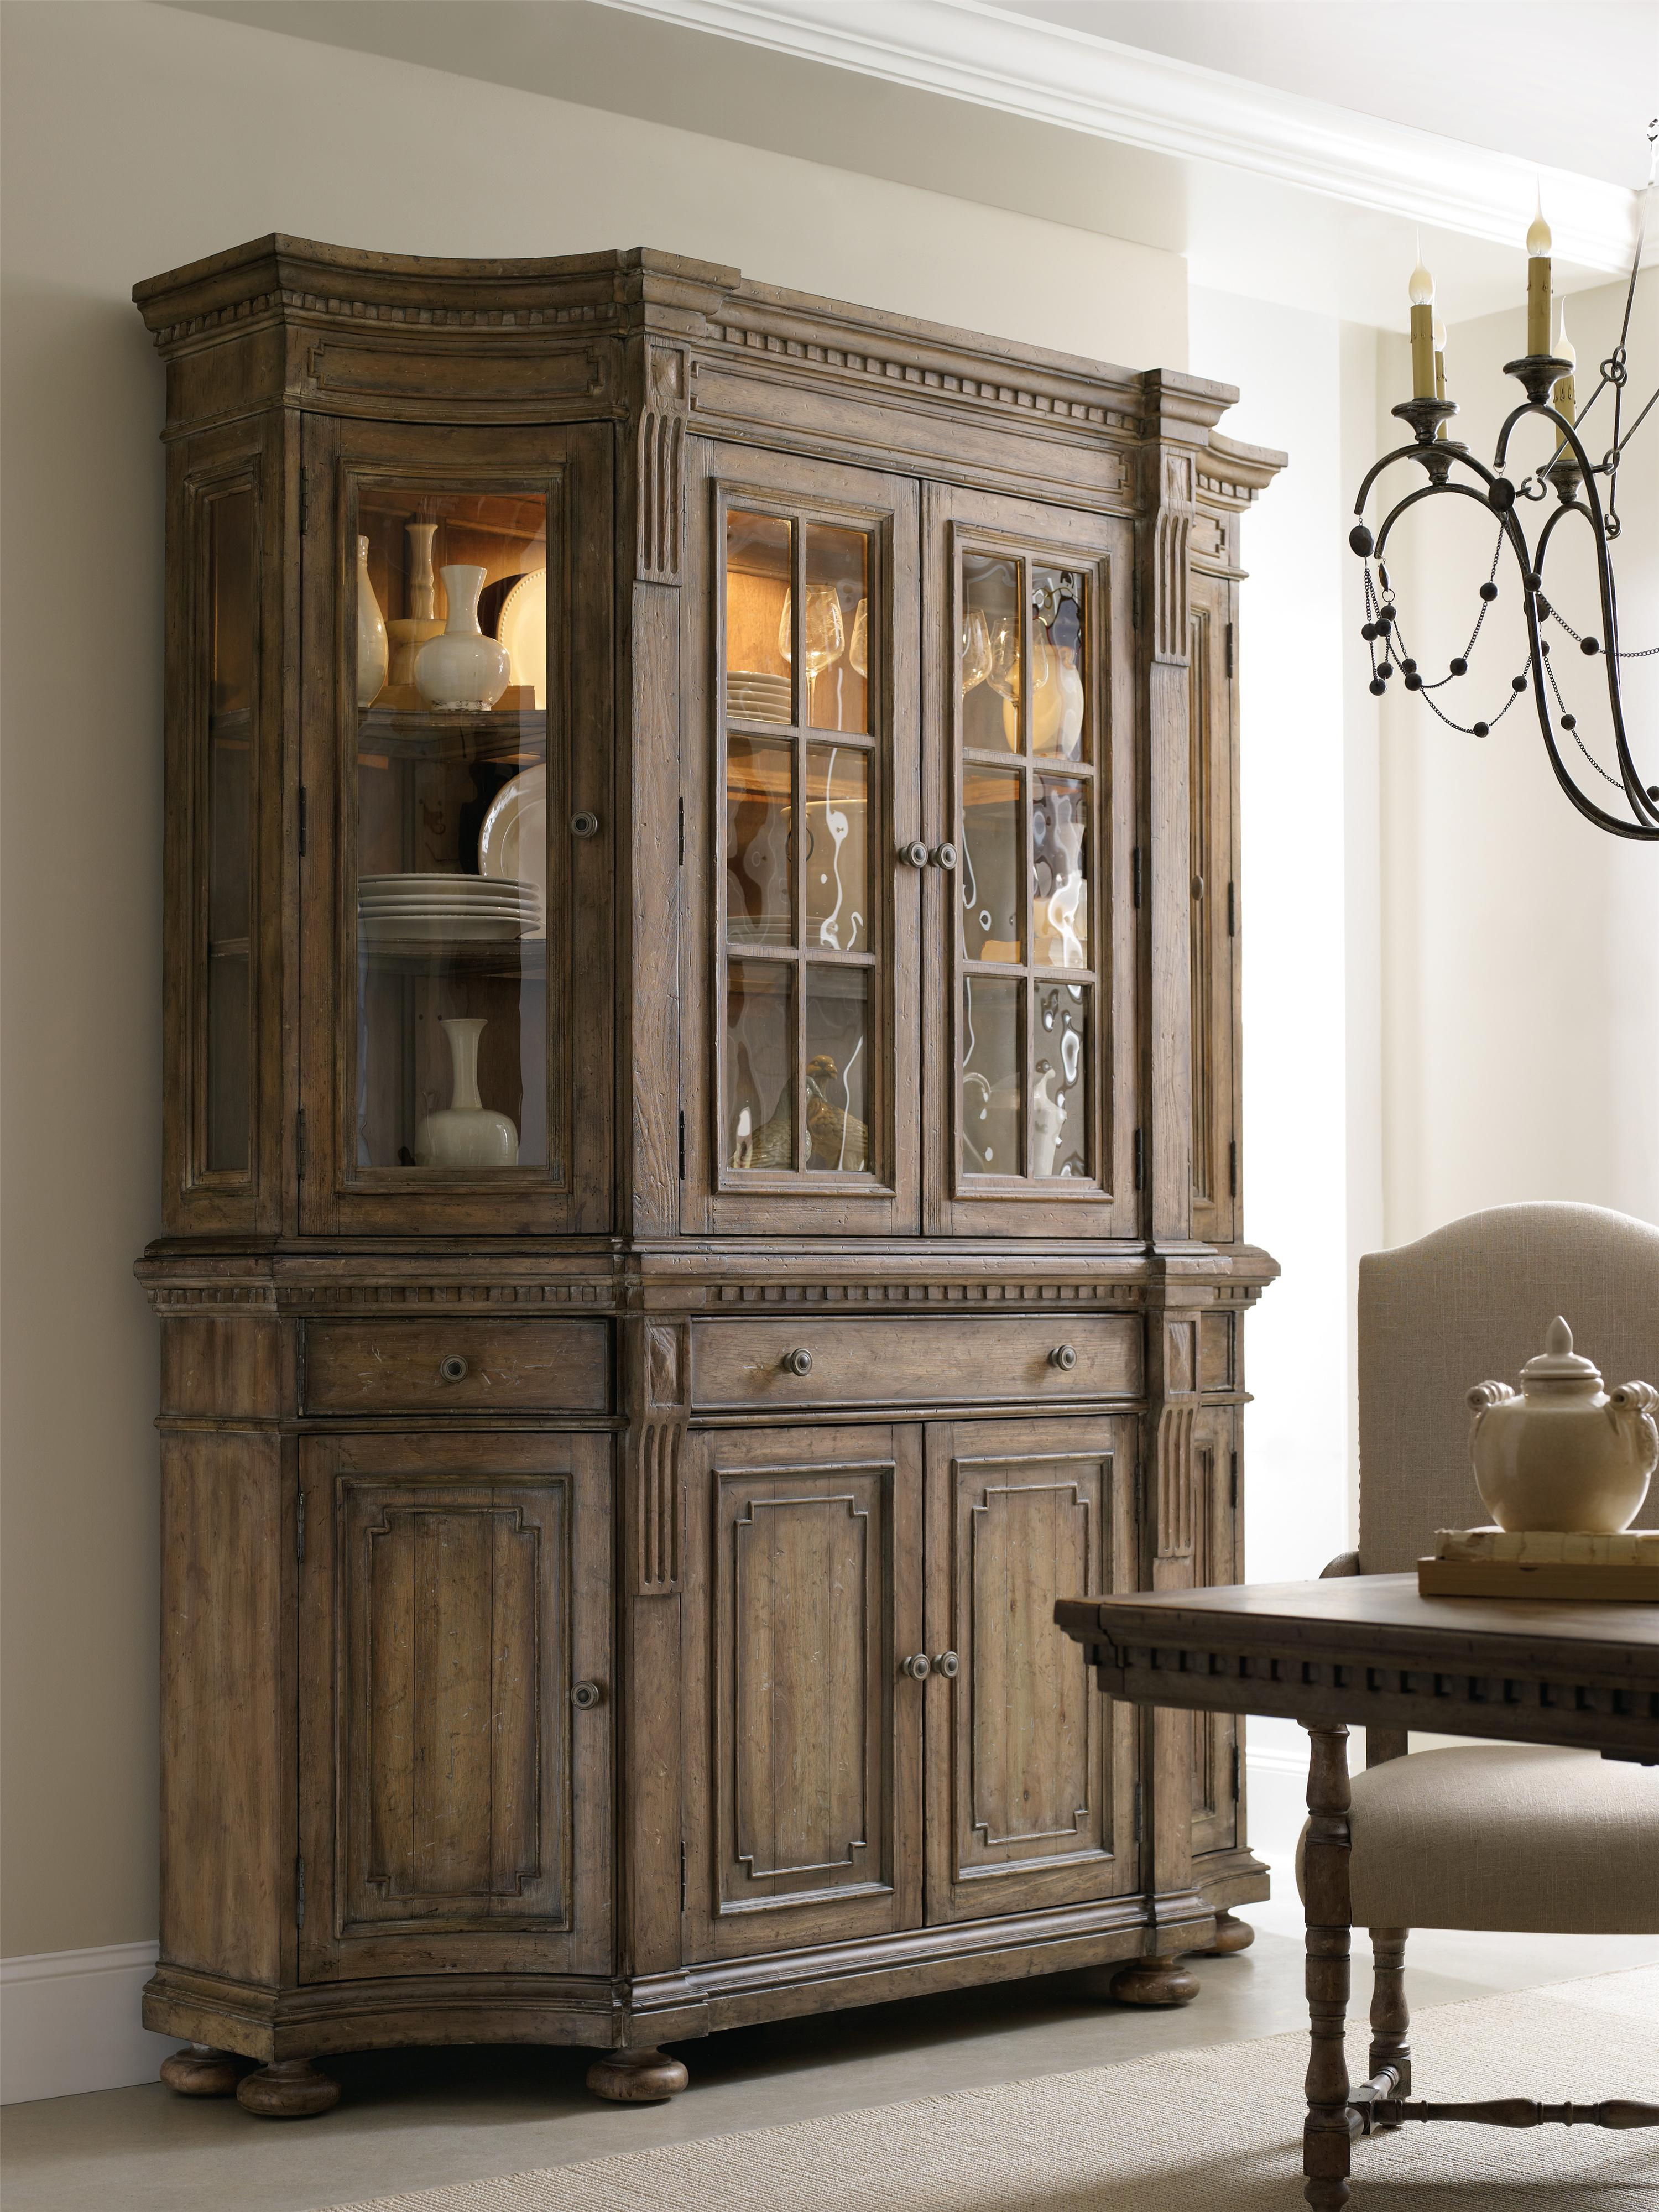 shaped credenza with concave side doors decorative panels and